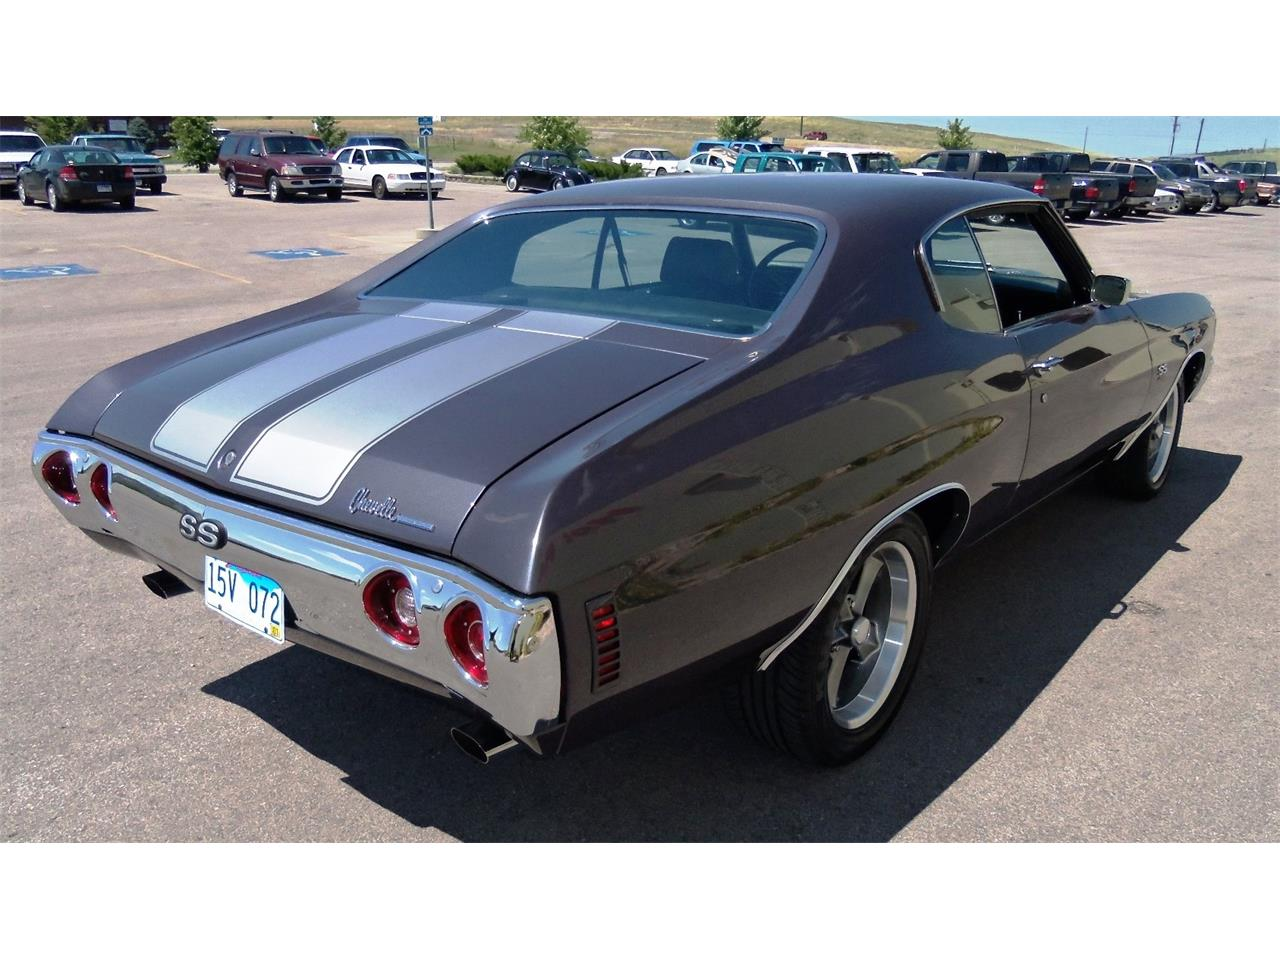 Large Picture of 1972 Chevrolet Chevelle SS located in South Dakota Offered by a Private Seller - OW11